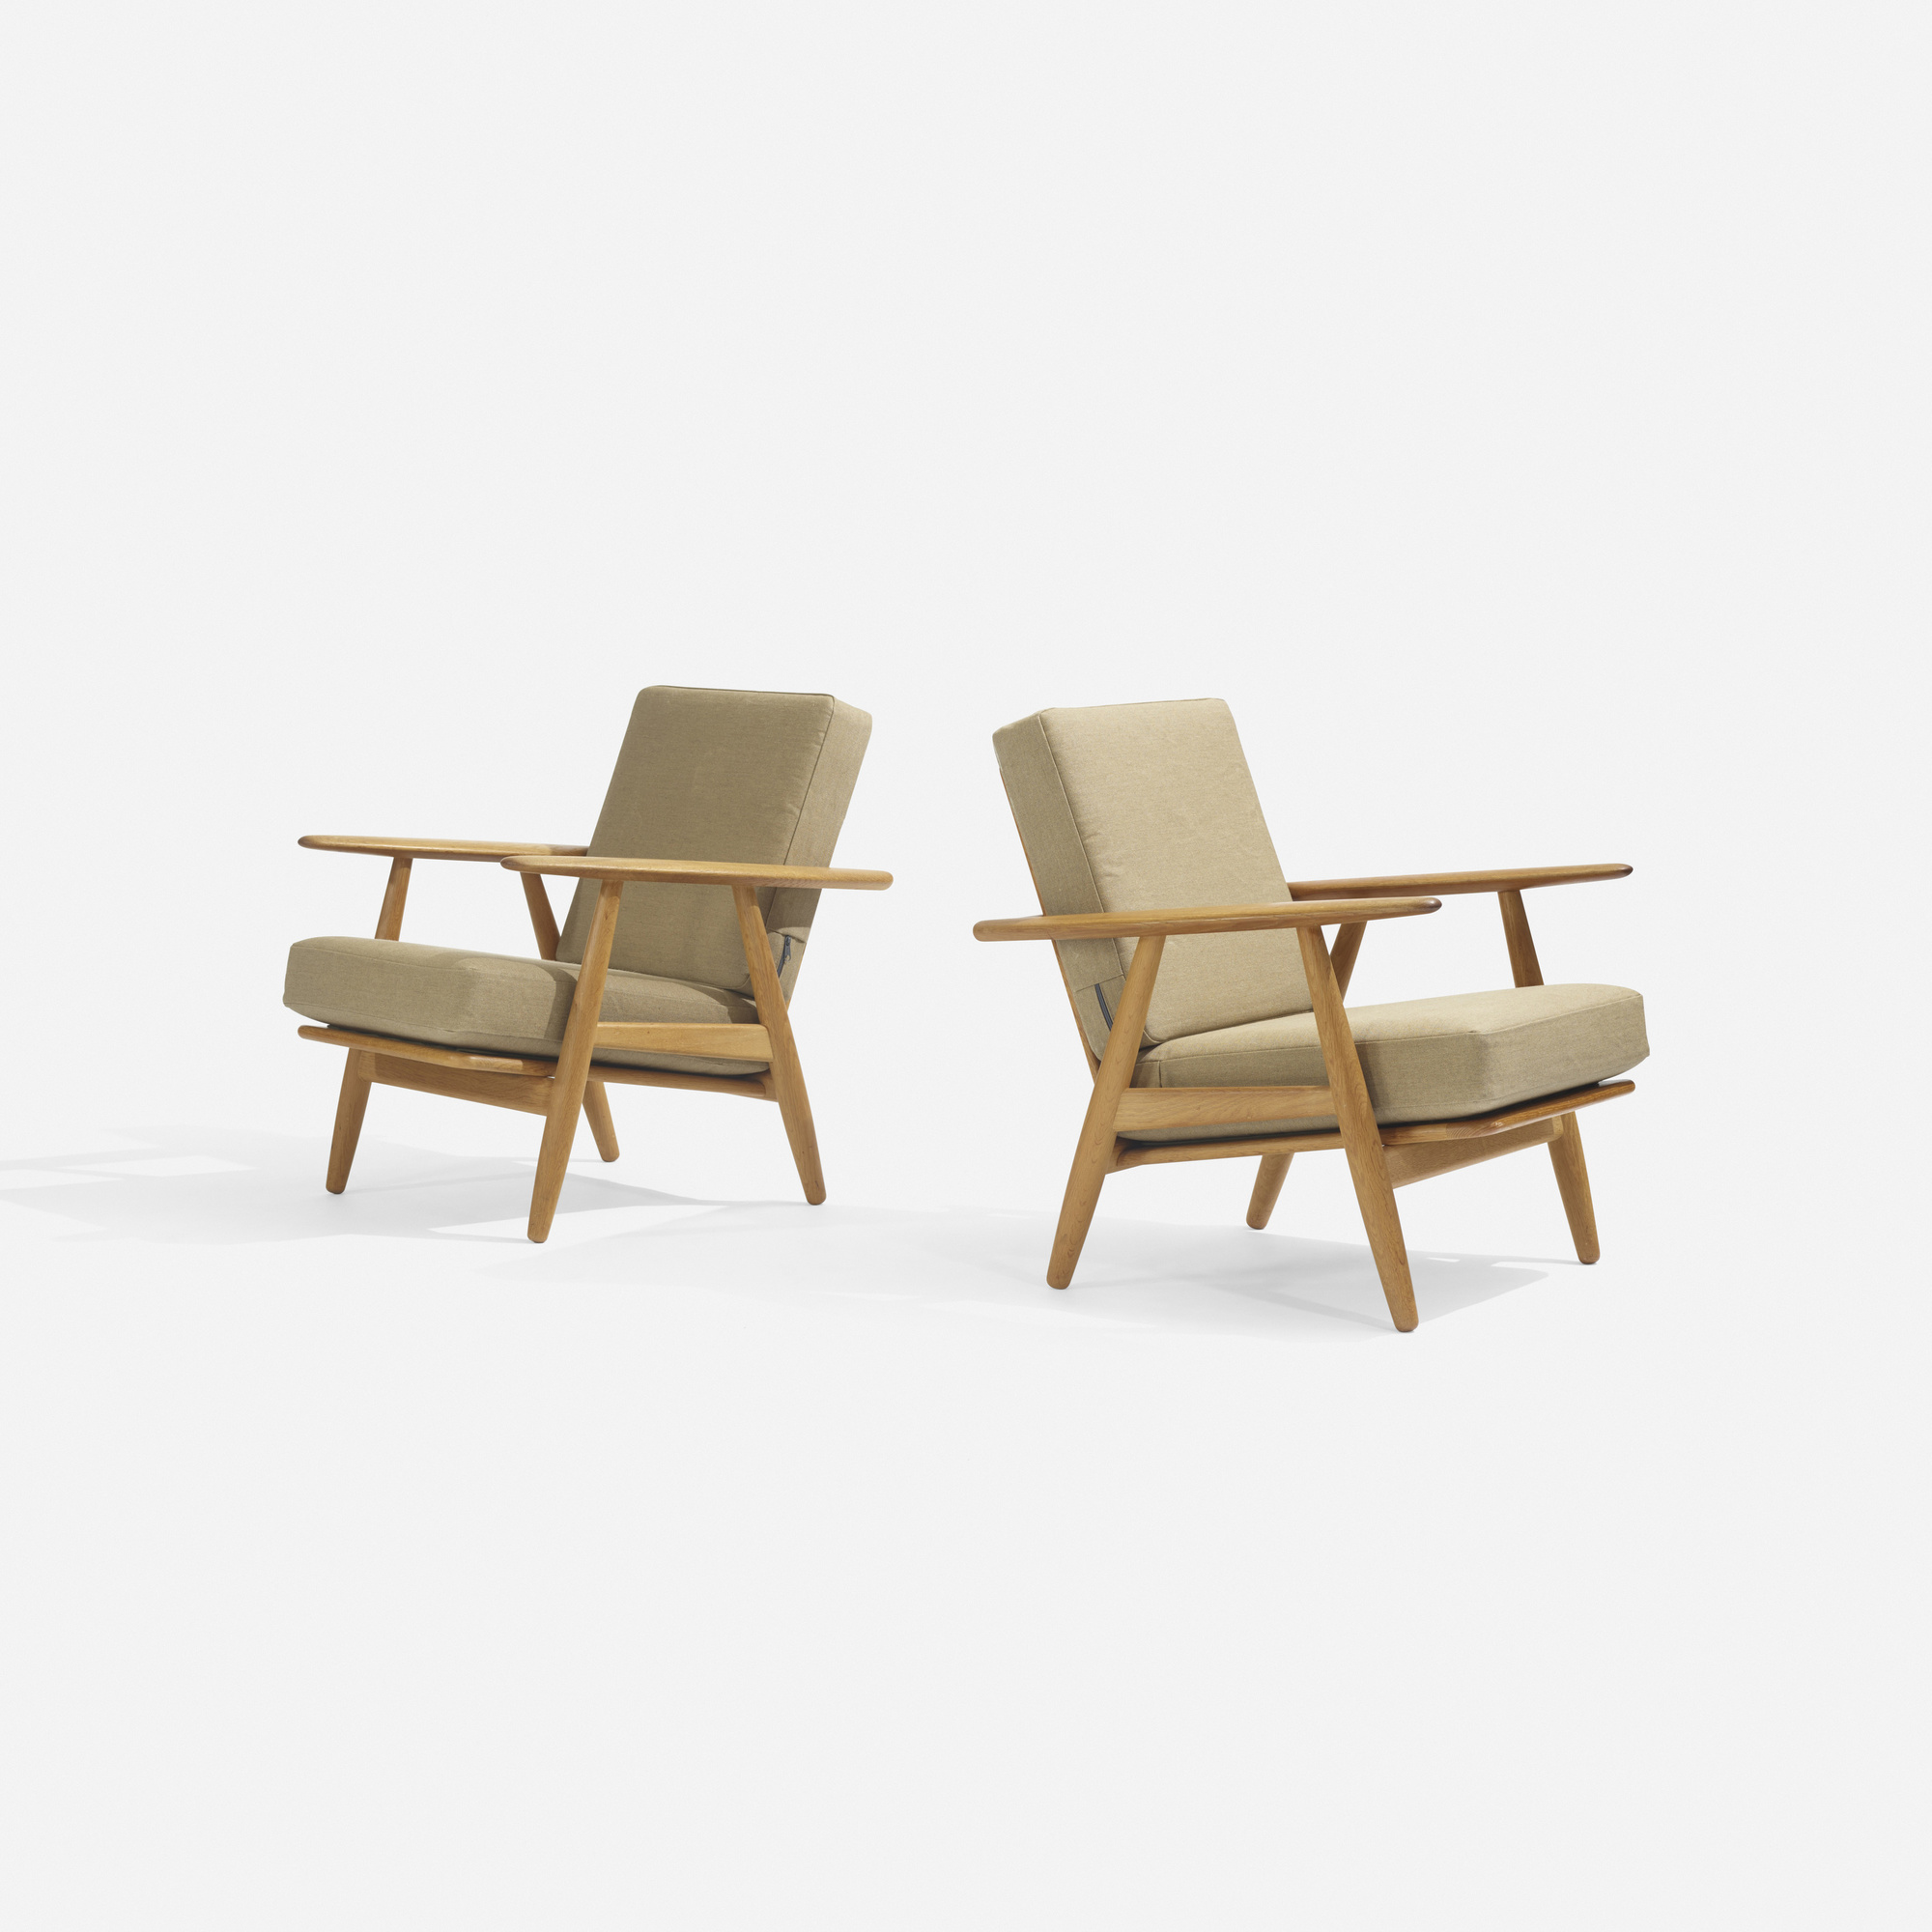 242: Hans J. Wegner / lounge chairs model GE240, pair (2 of 4)